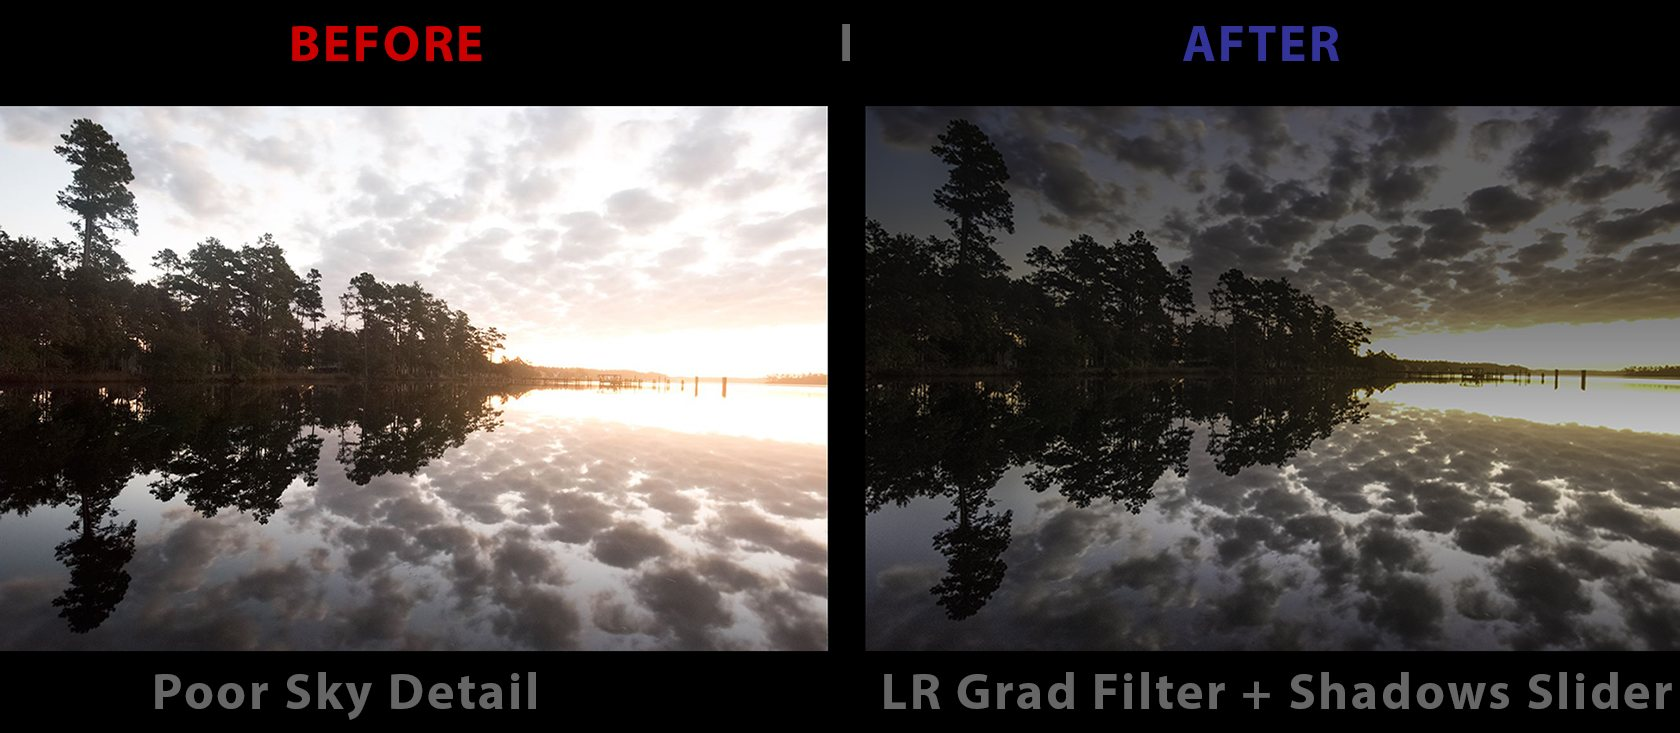 BEFORE AFTER TREES CLOUDS SKY example 2.